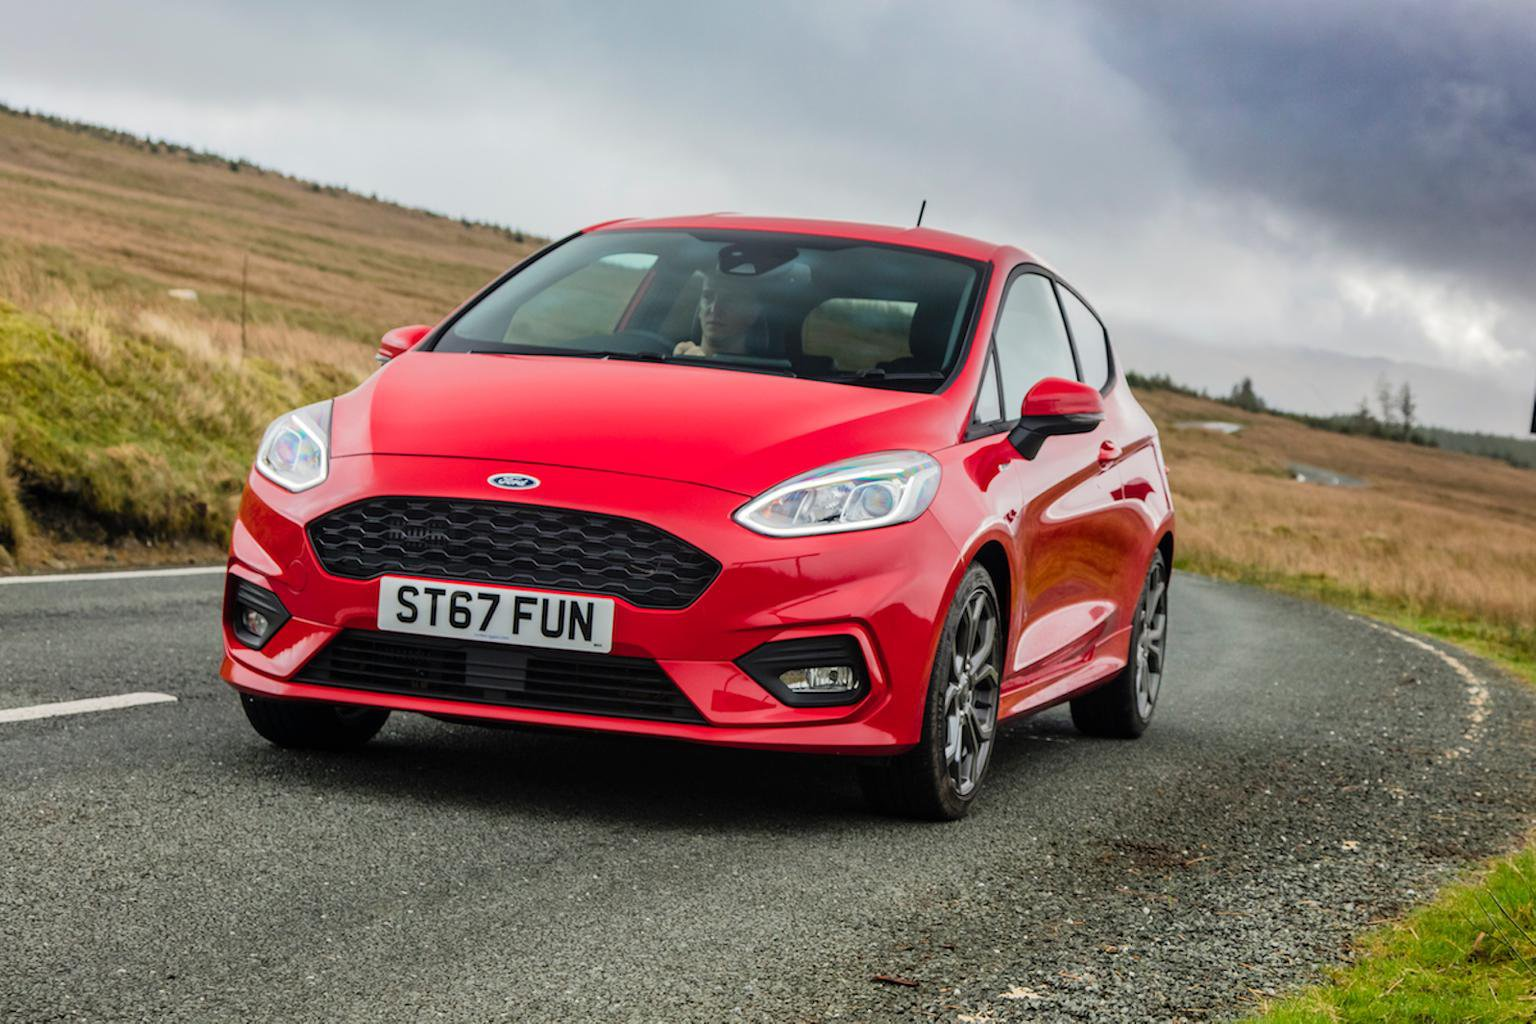 2017 Ford Fiesta 1.0 Ecoboost 140 ST-Line review - verdict